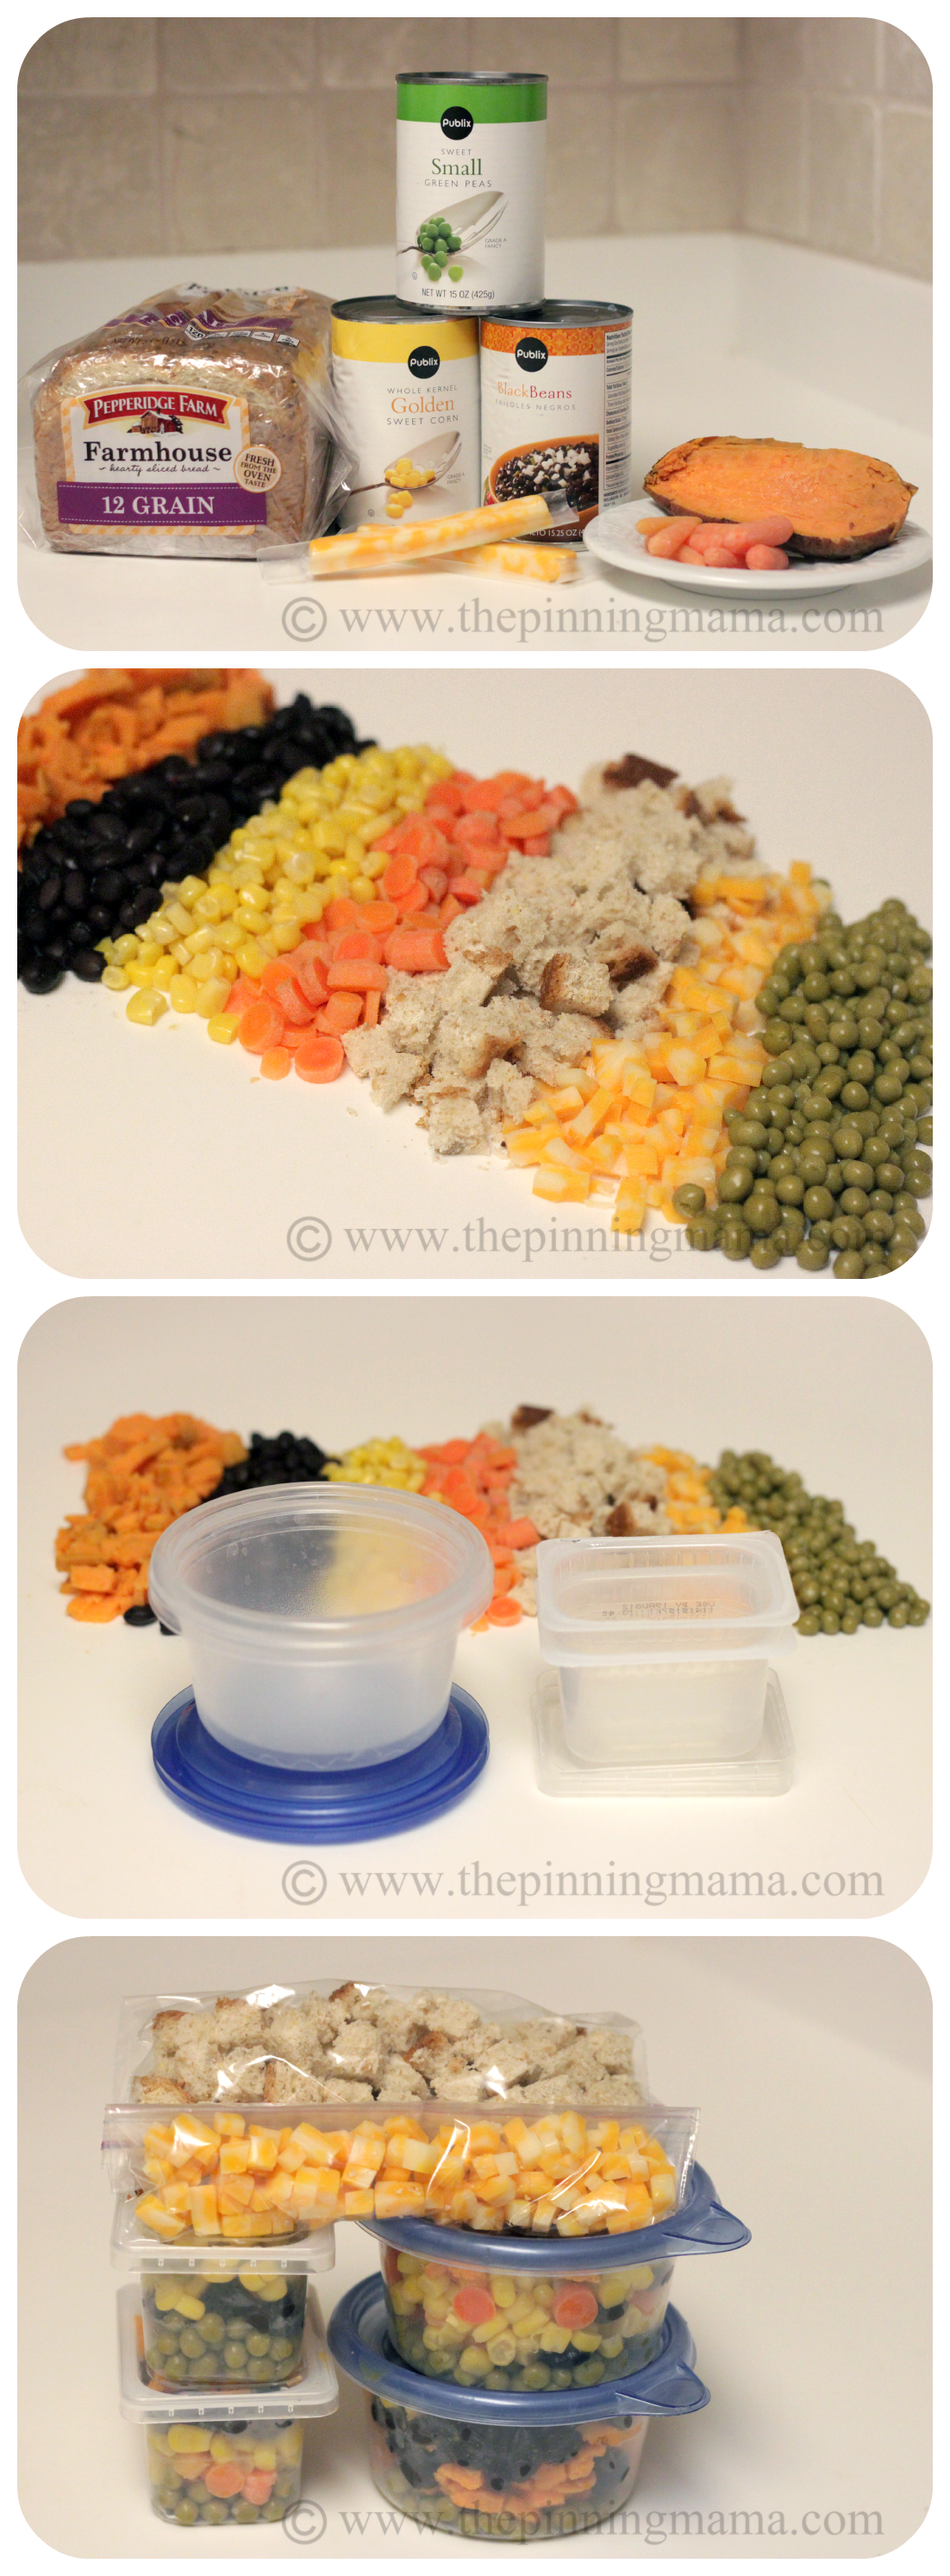 Healthy and Easy Baby Finger Foods for a babyled weaning